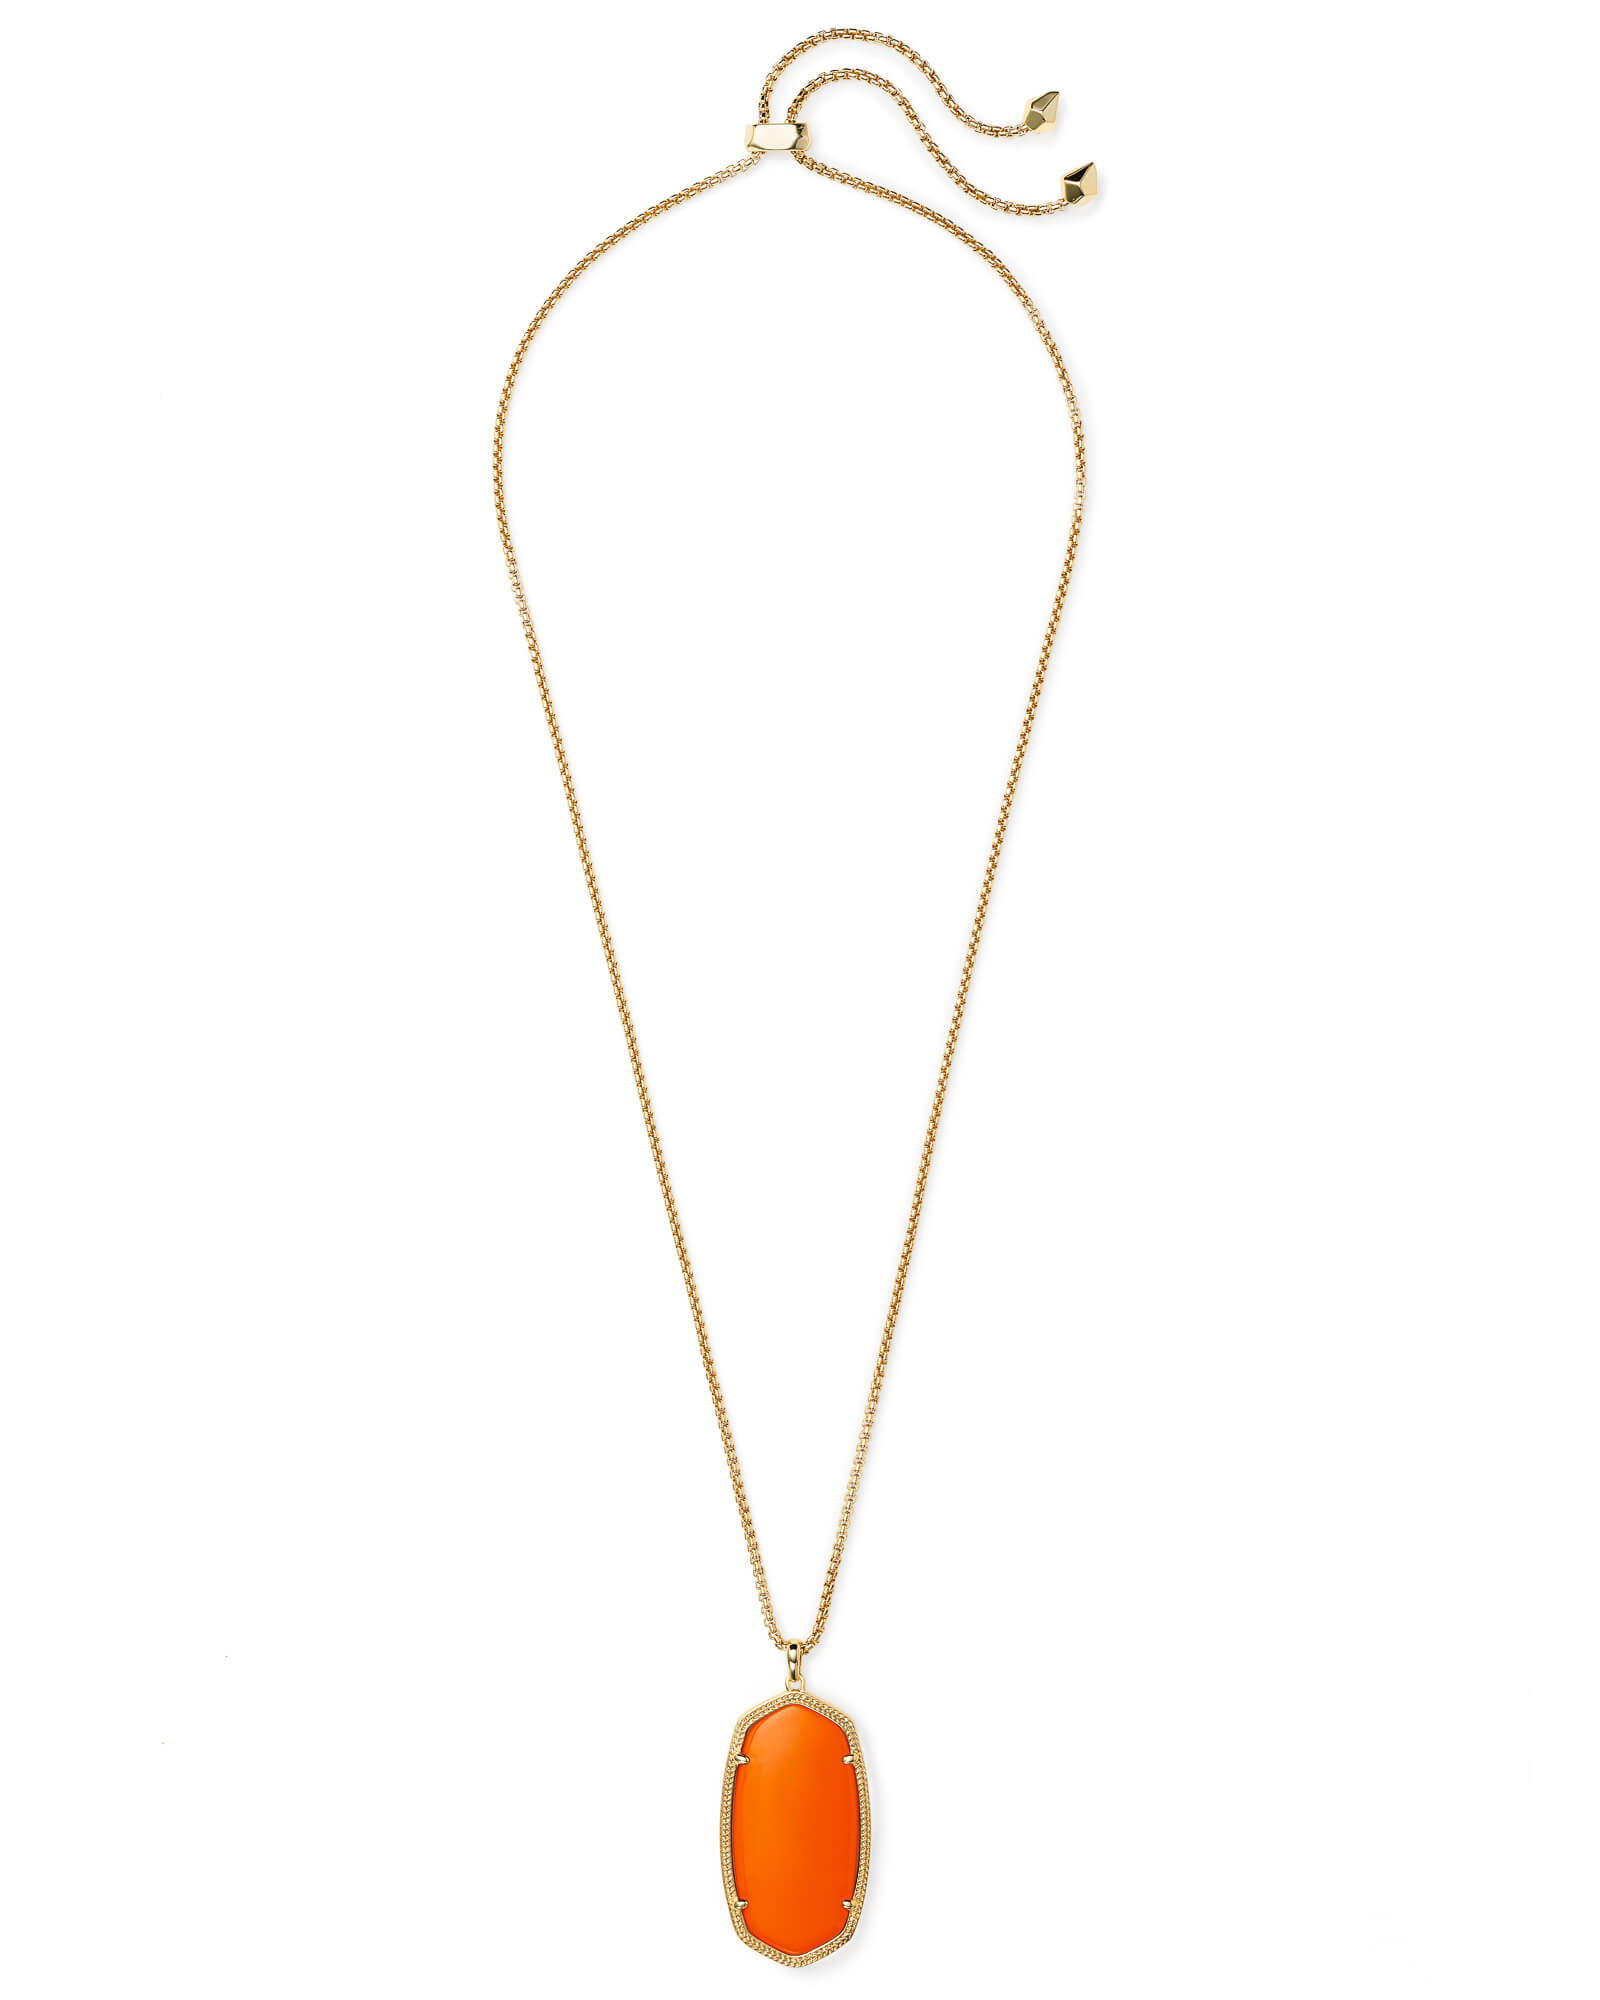 Reid Gold Long Pendant Necklace in Orange